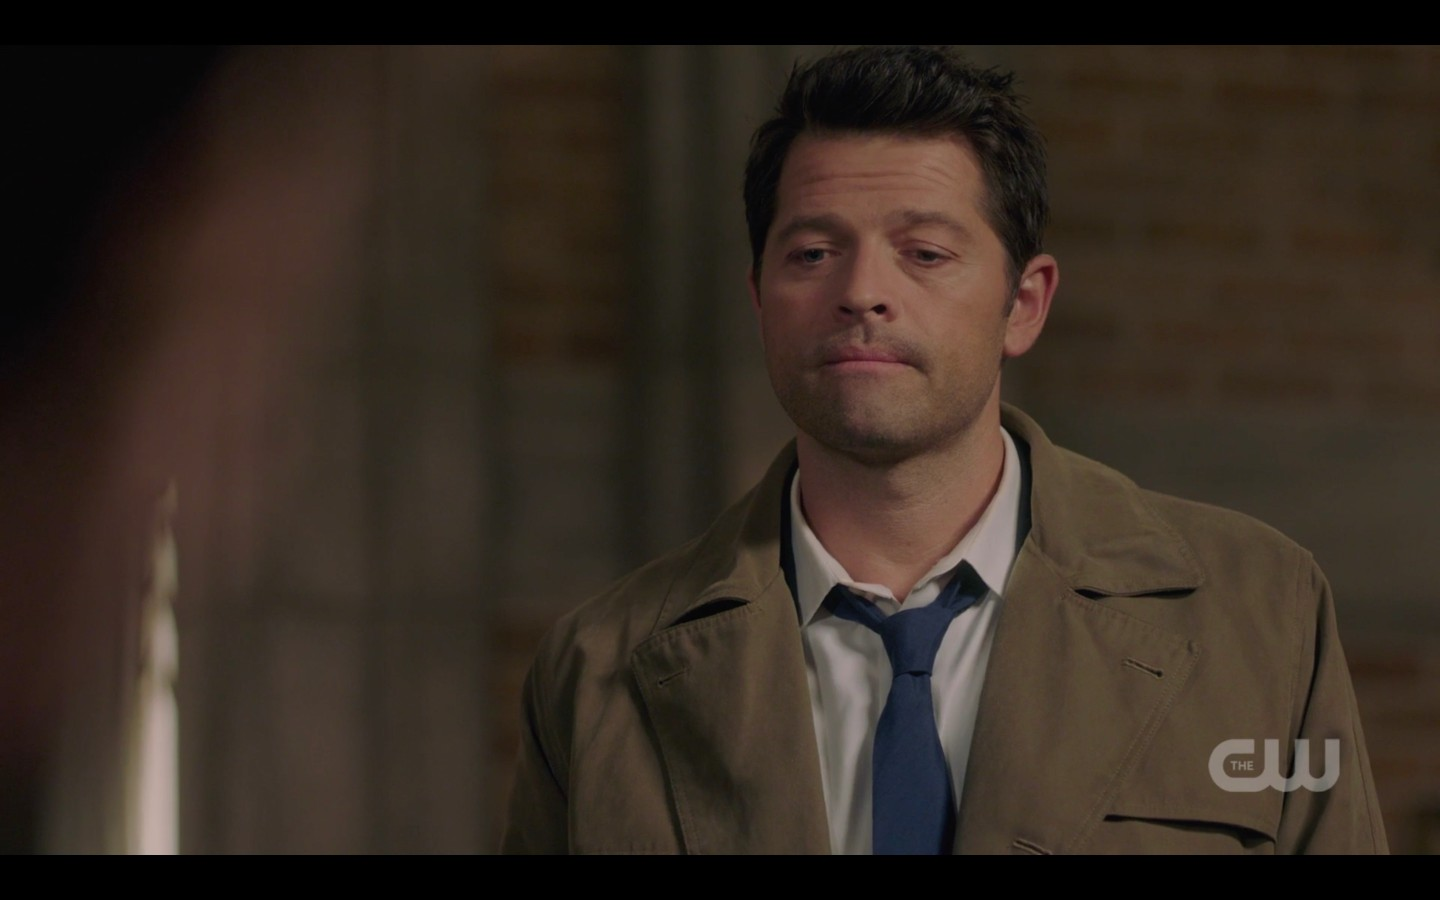 spn 1407 castiel with trenchcoat